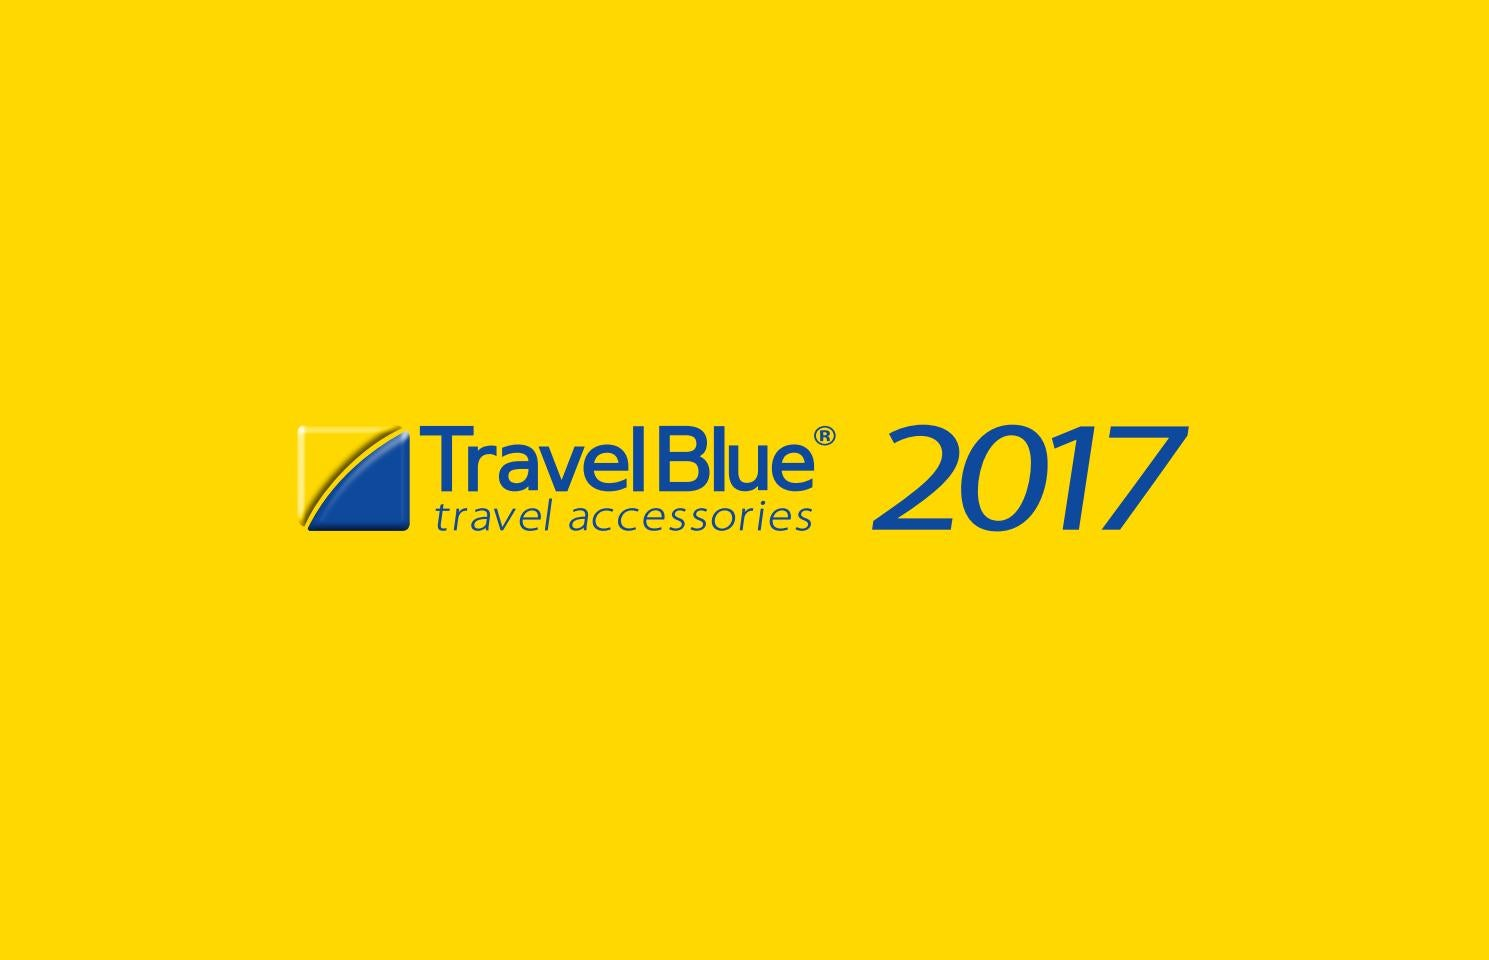 a62046178110 Travel blue catalogo 2017 by travel-blue - issuu